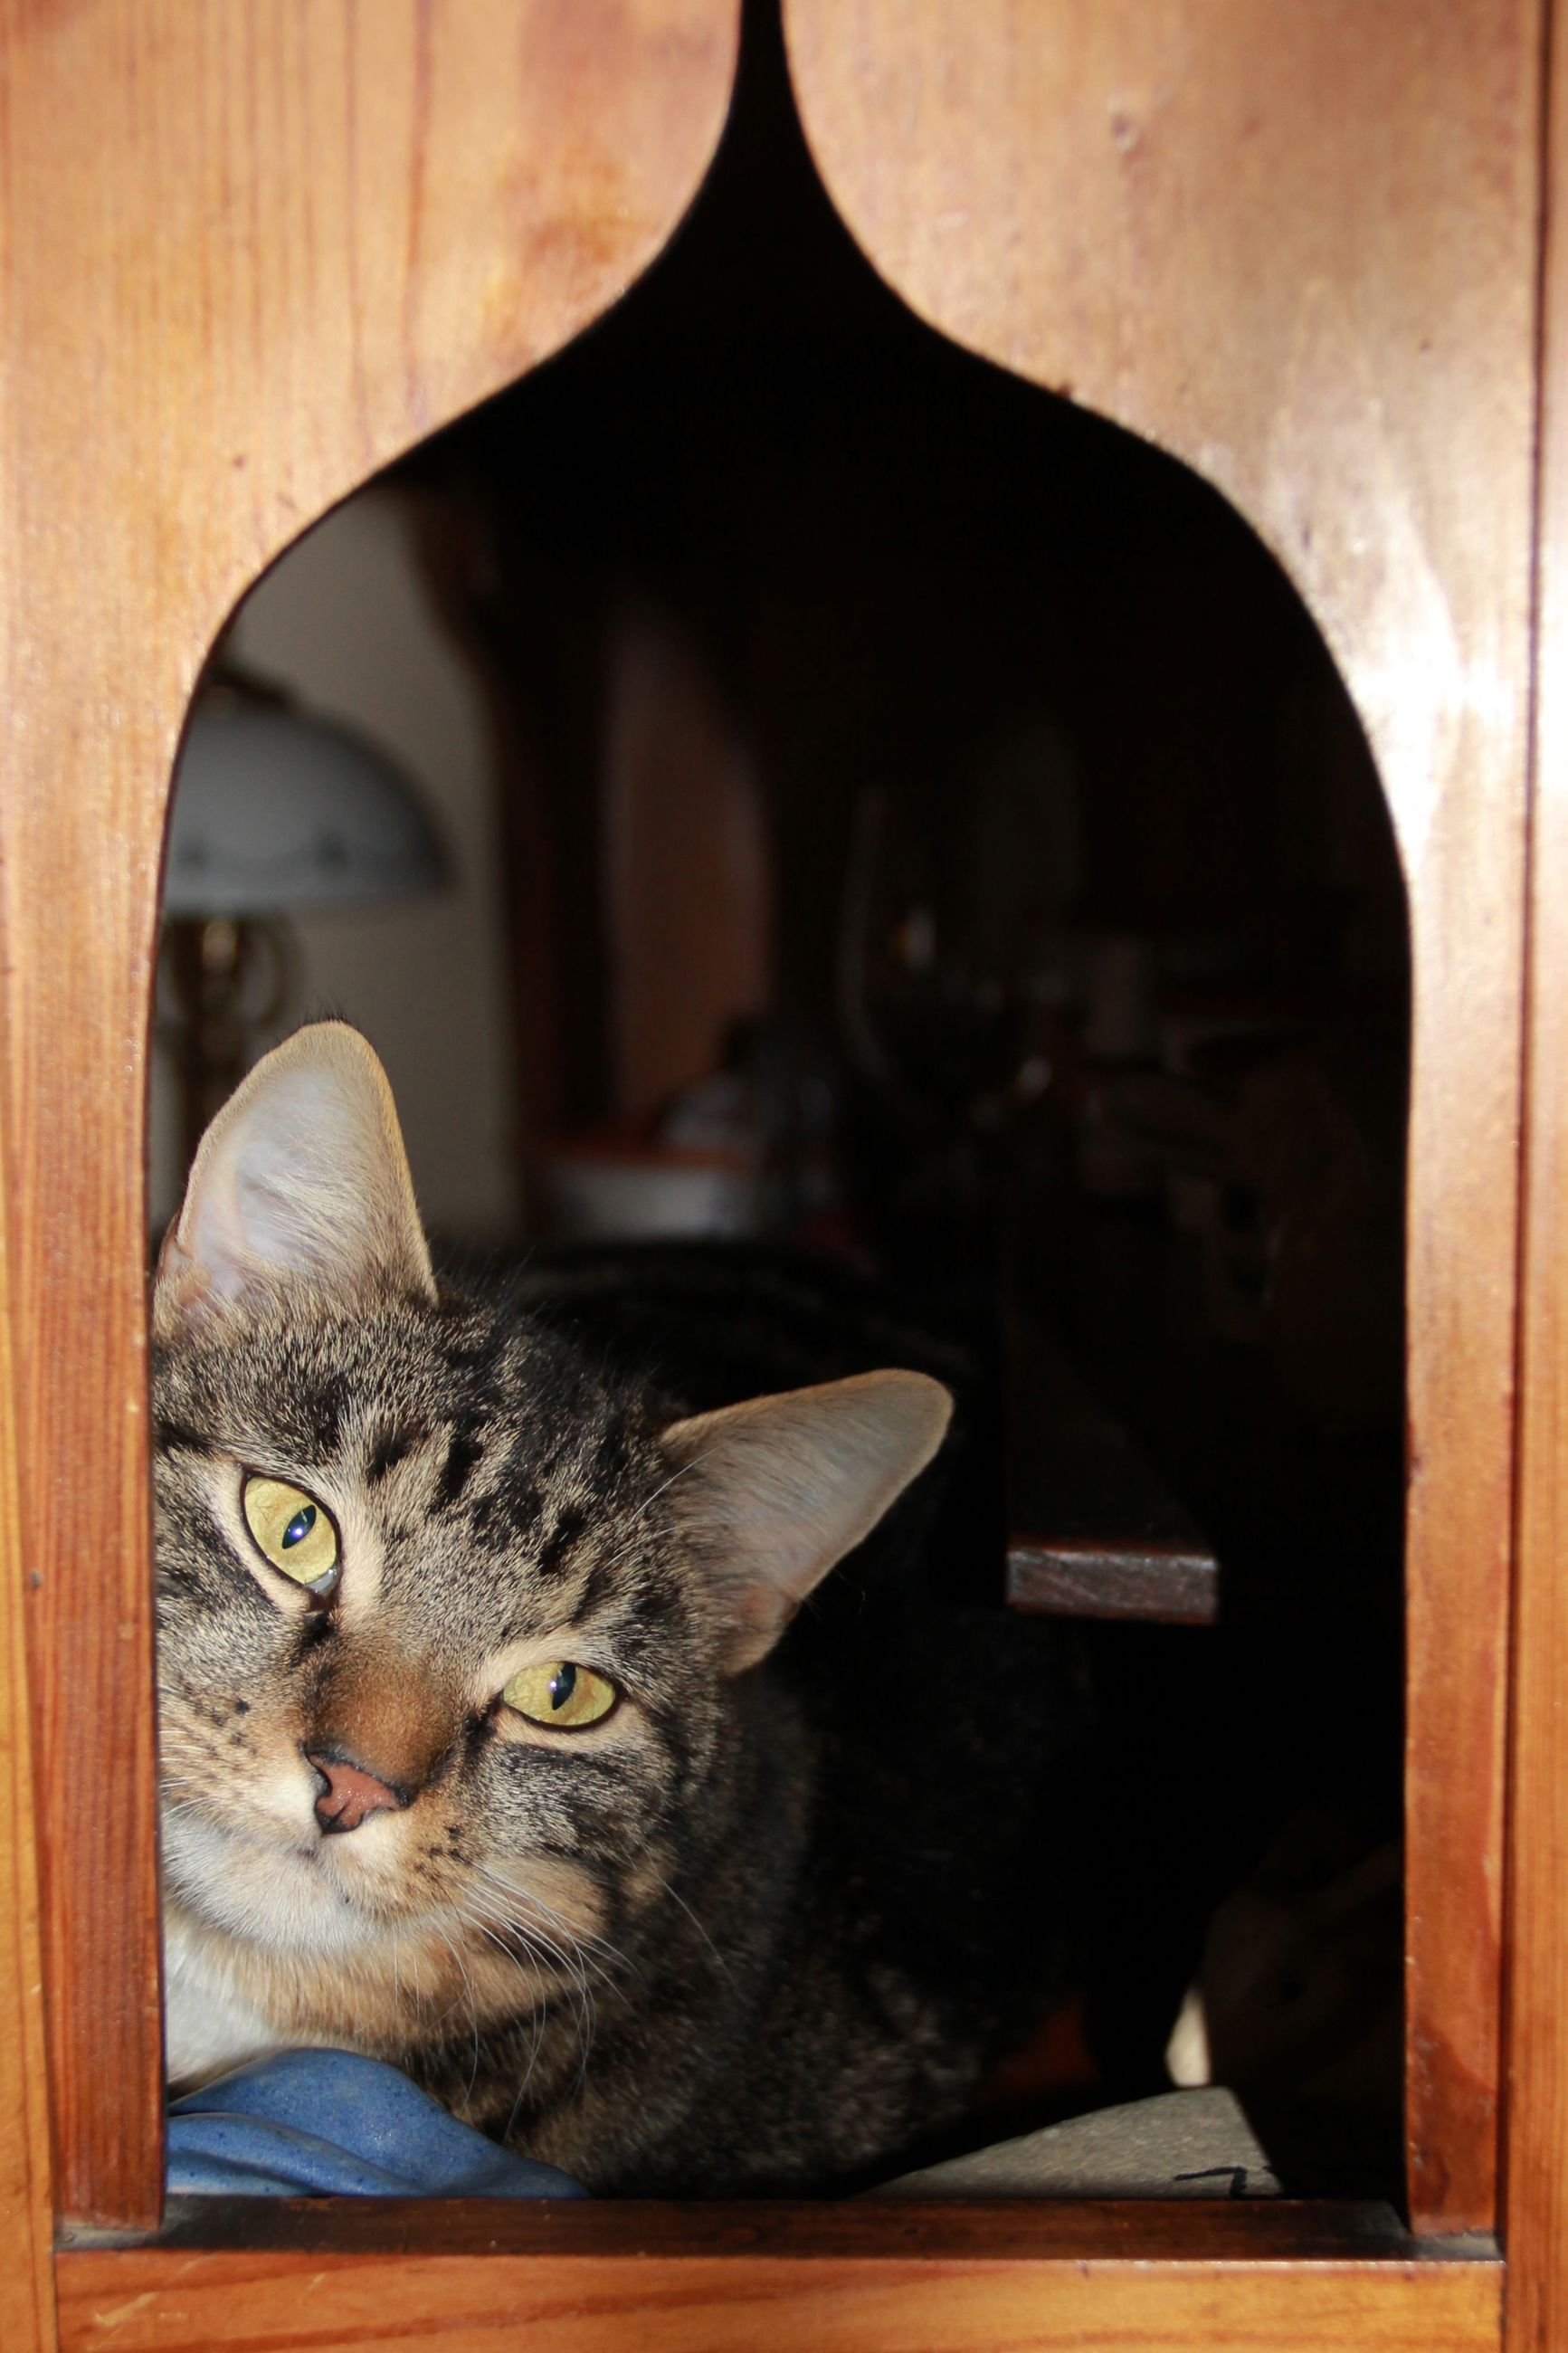 domestic cat, cat, domestic animals, pets, feline, animal themes, indoors, one animal, mammal, whisker, home interior, relaxation, sitting, looking at camera, portrait, house, home, window, table, built structure